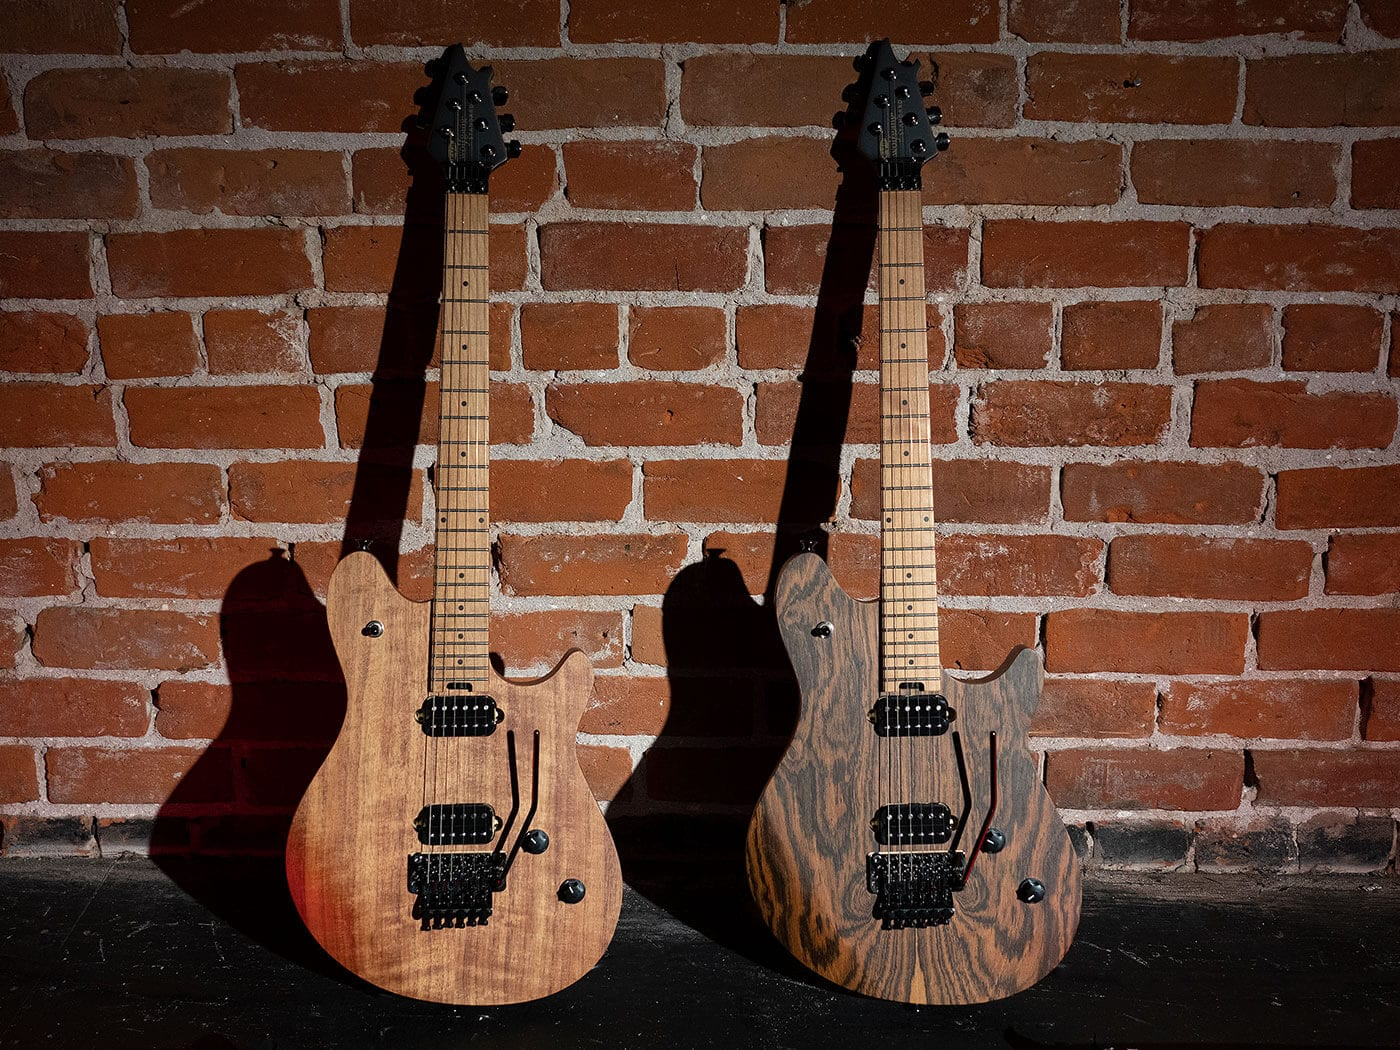 EVH Wolfgang in Wolfgang WG Standardand these are being offered in Exotic Bocote and Exotic Koa